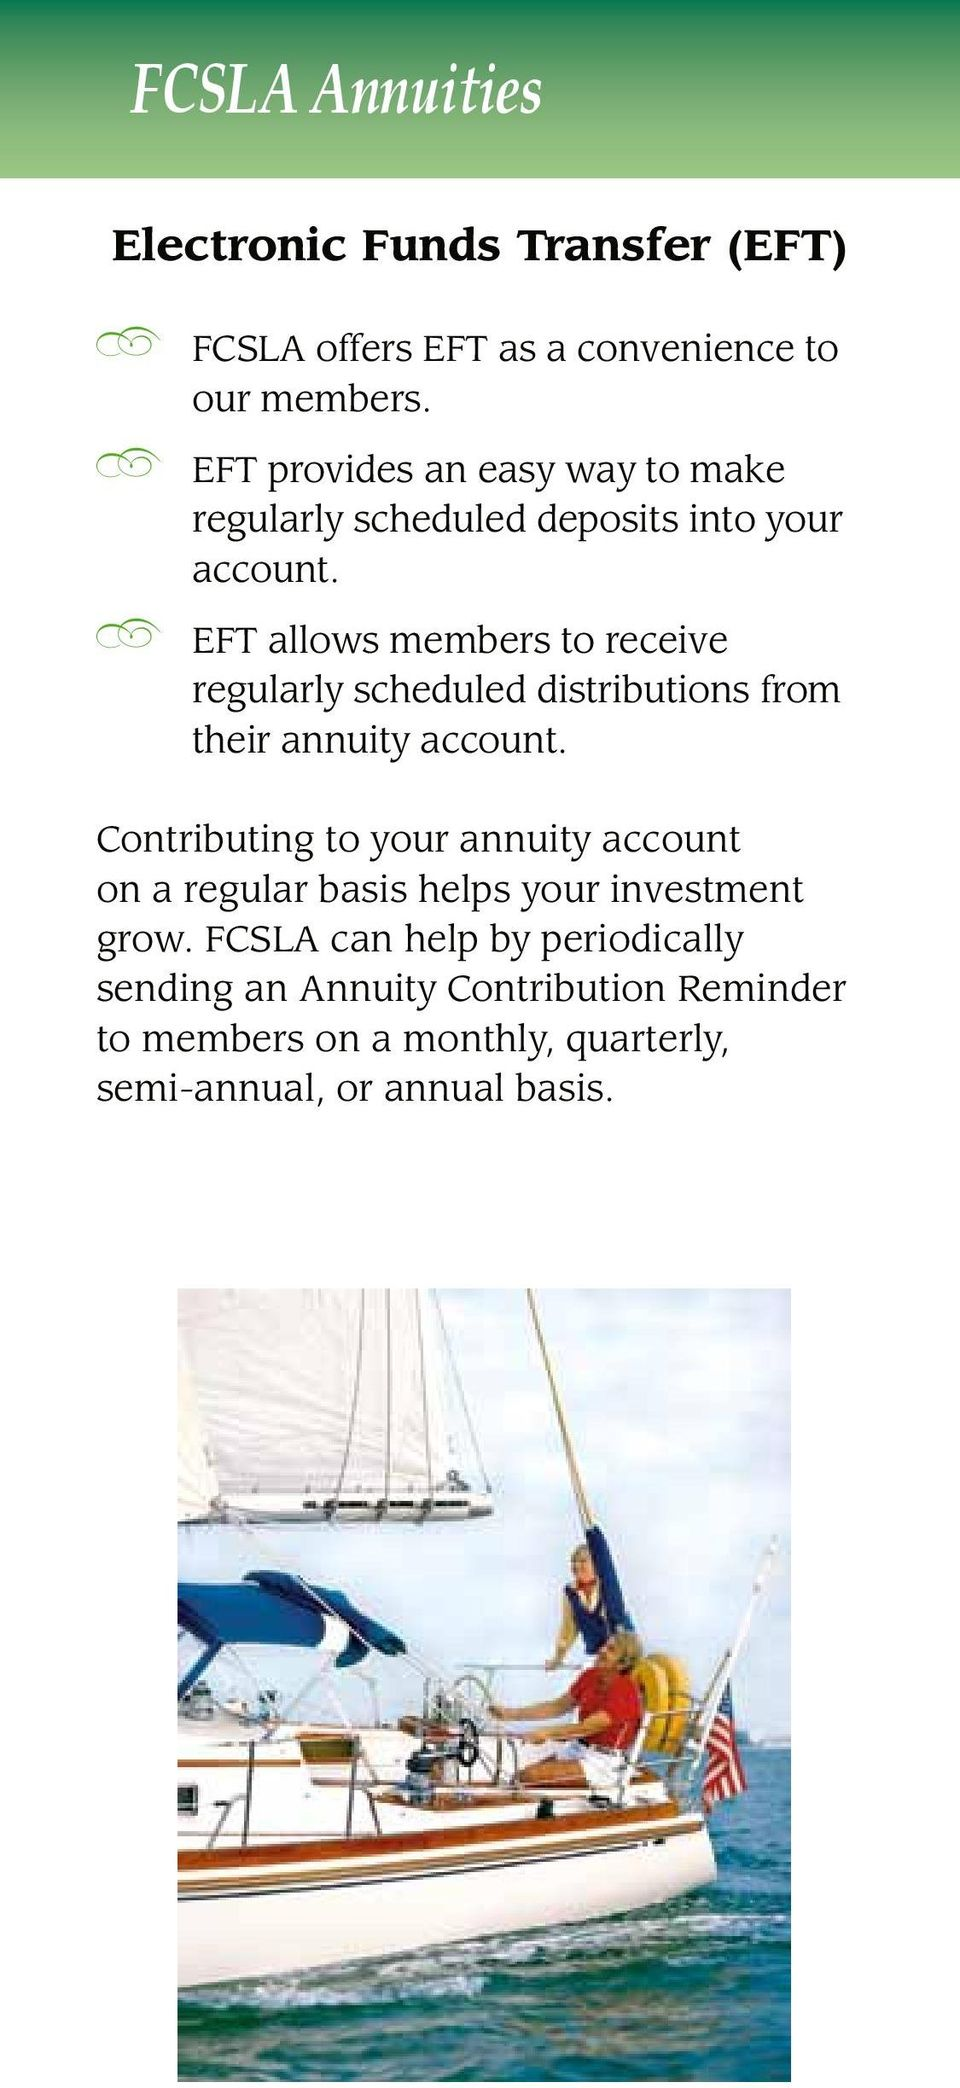 EFT allows members to receive regularly scheduled distributions from their annuity account.